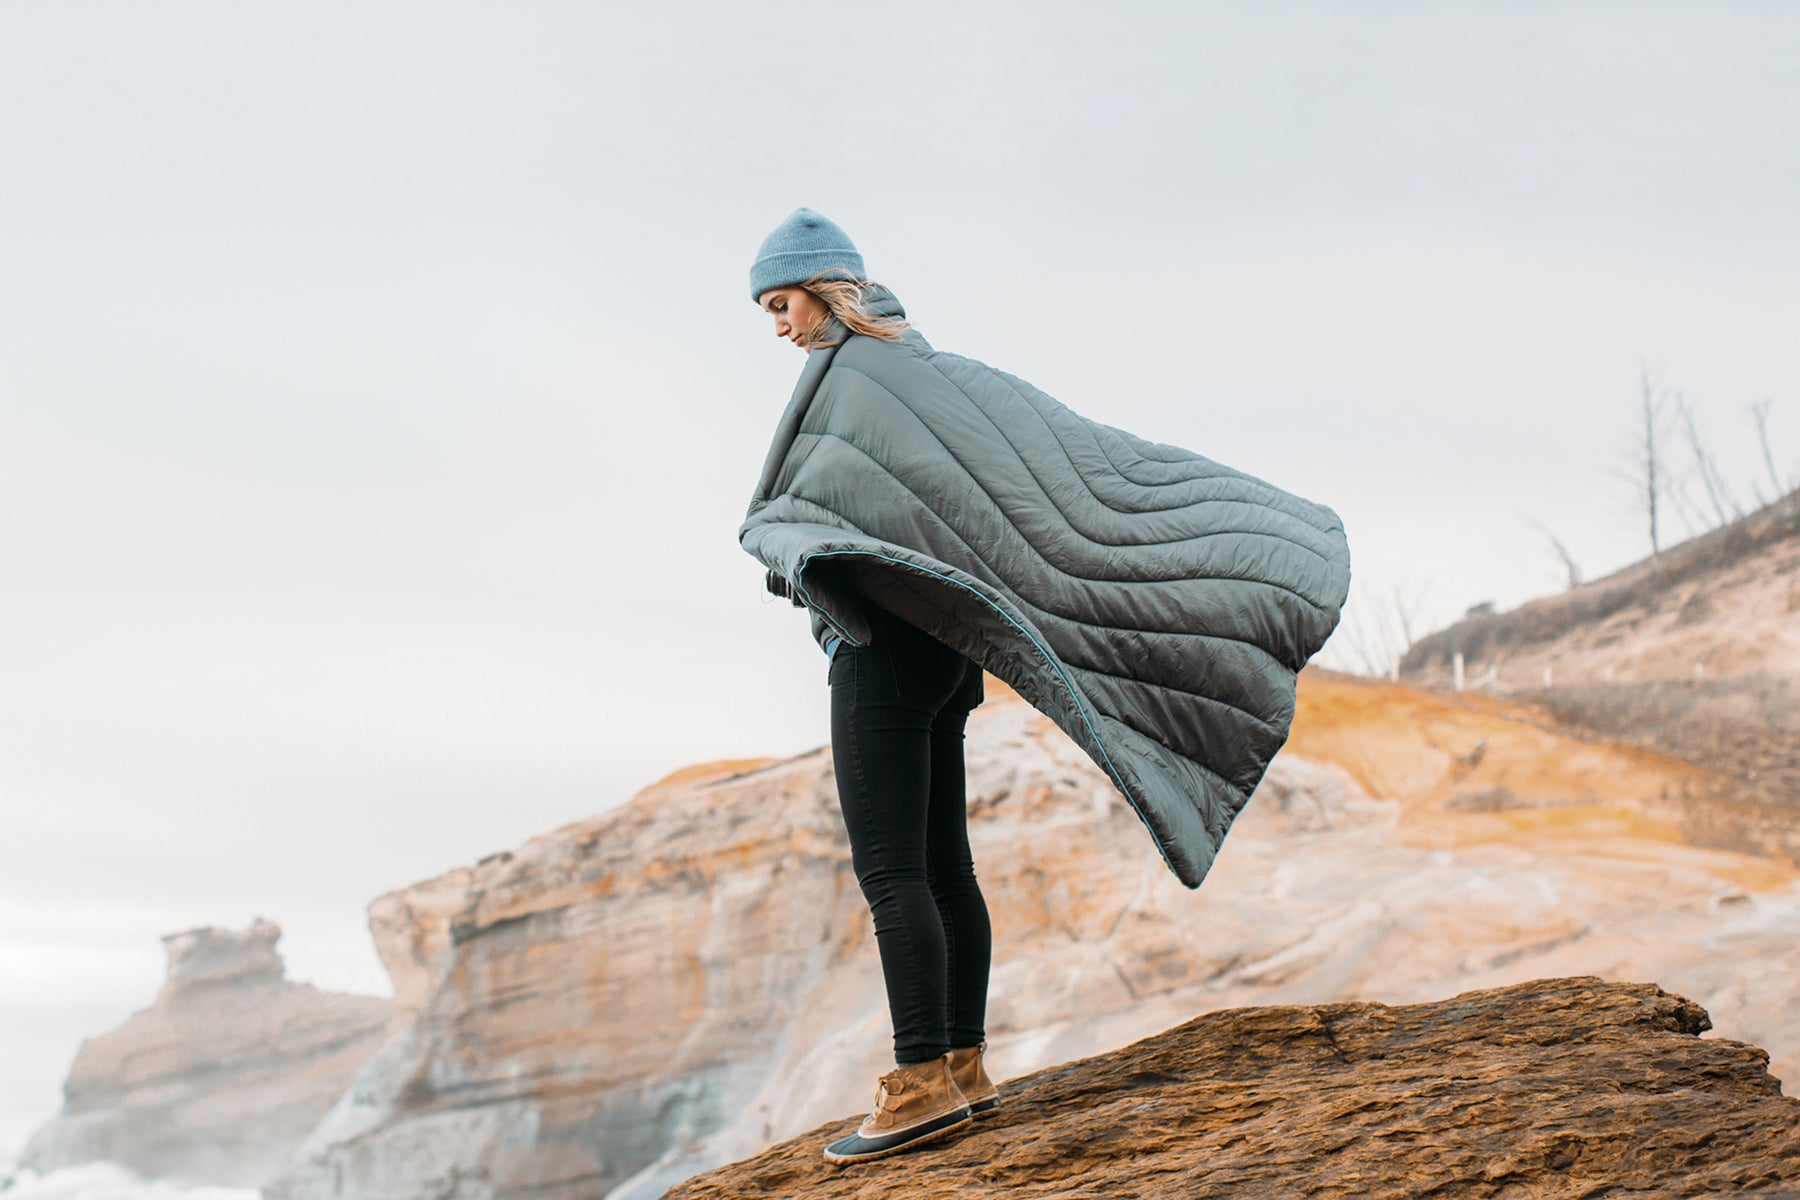 The Rumpl Original Puffy Blanket, Indoor Comfort with Outdoor Performance